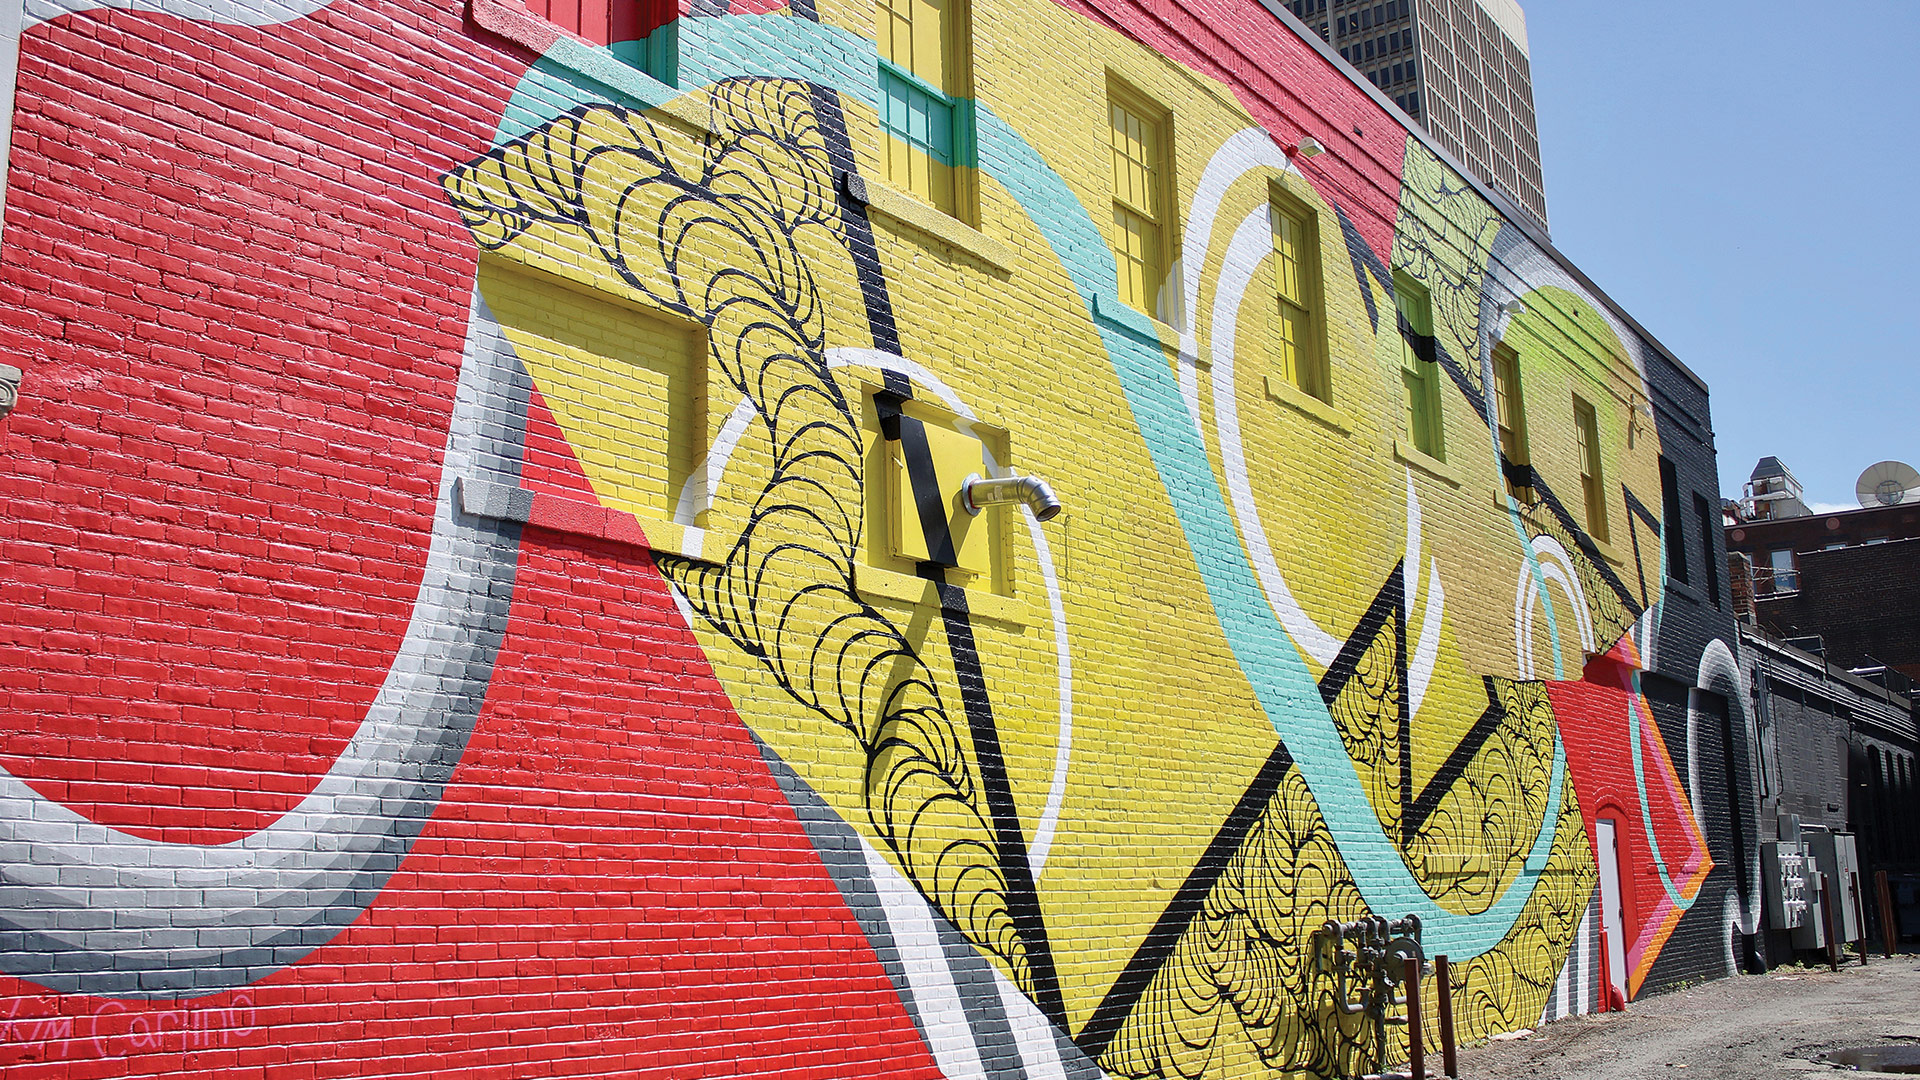 Kim Carlino's mural at 8-12 Stearns Square is a product of her love for creating illusion and disillusion of space in abstract form.